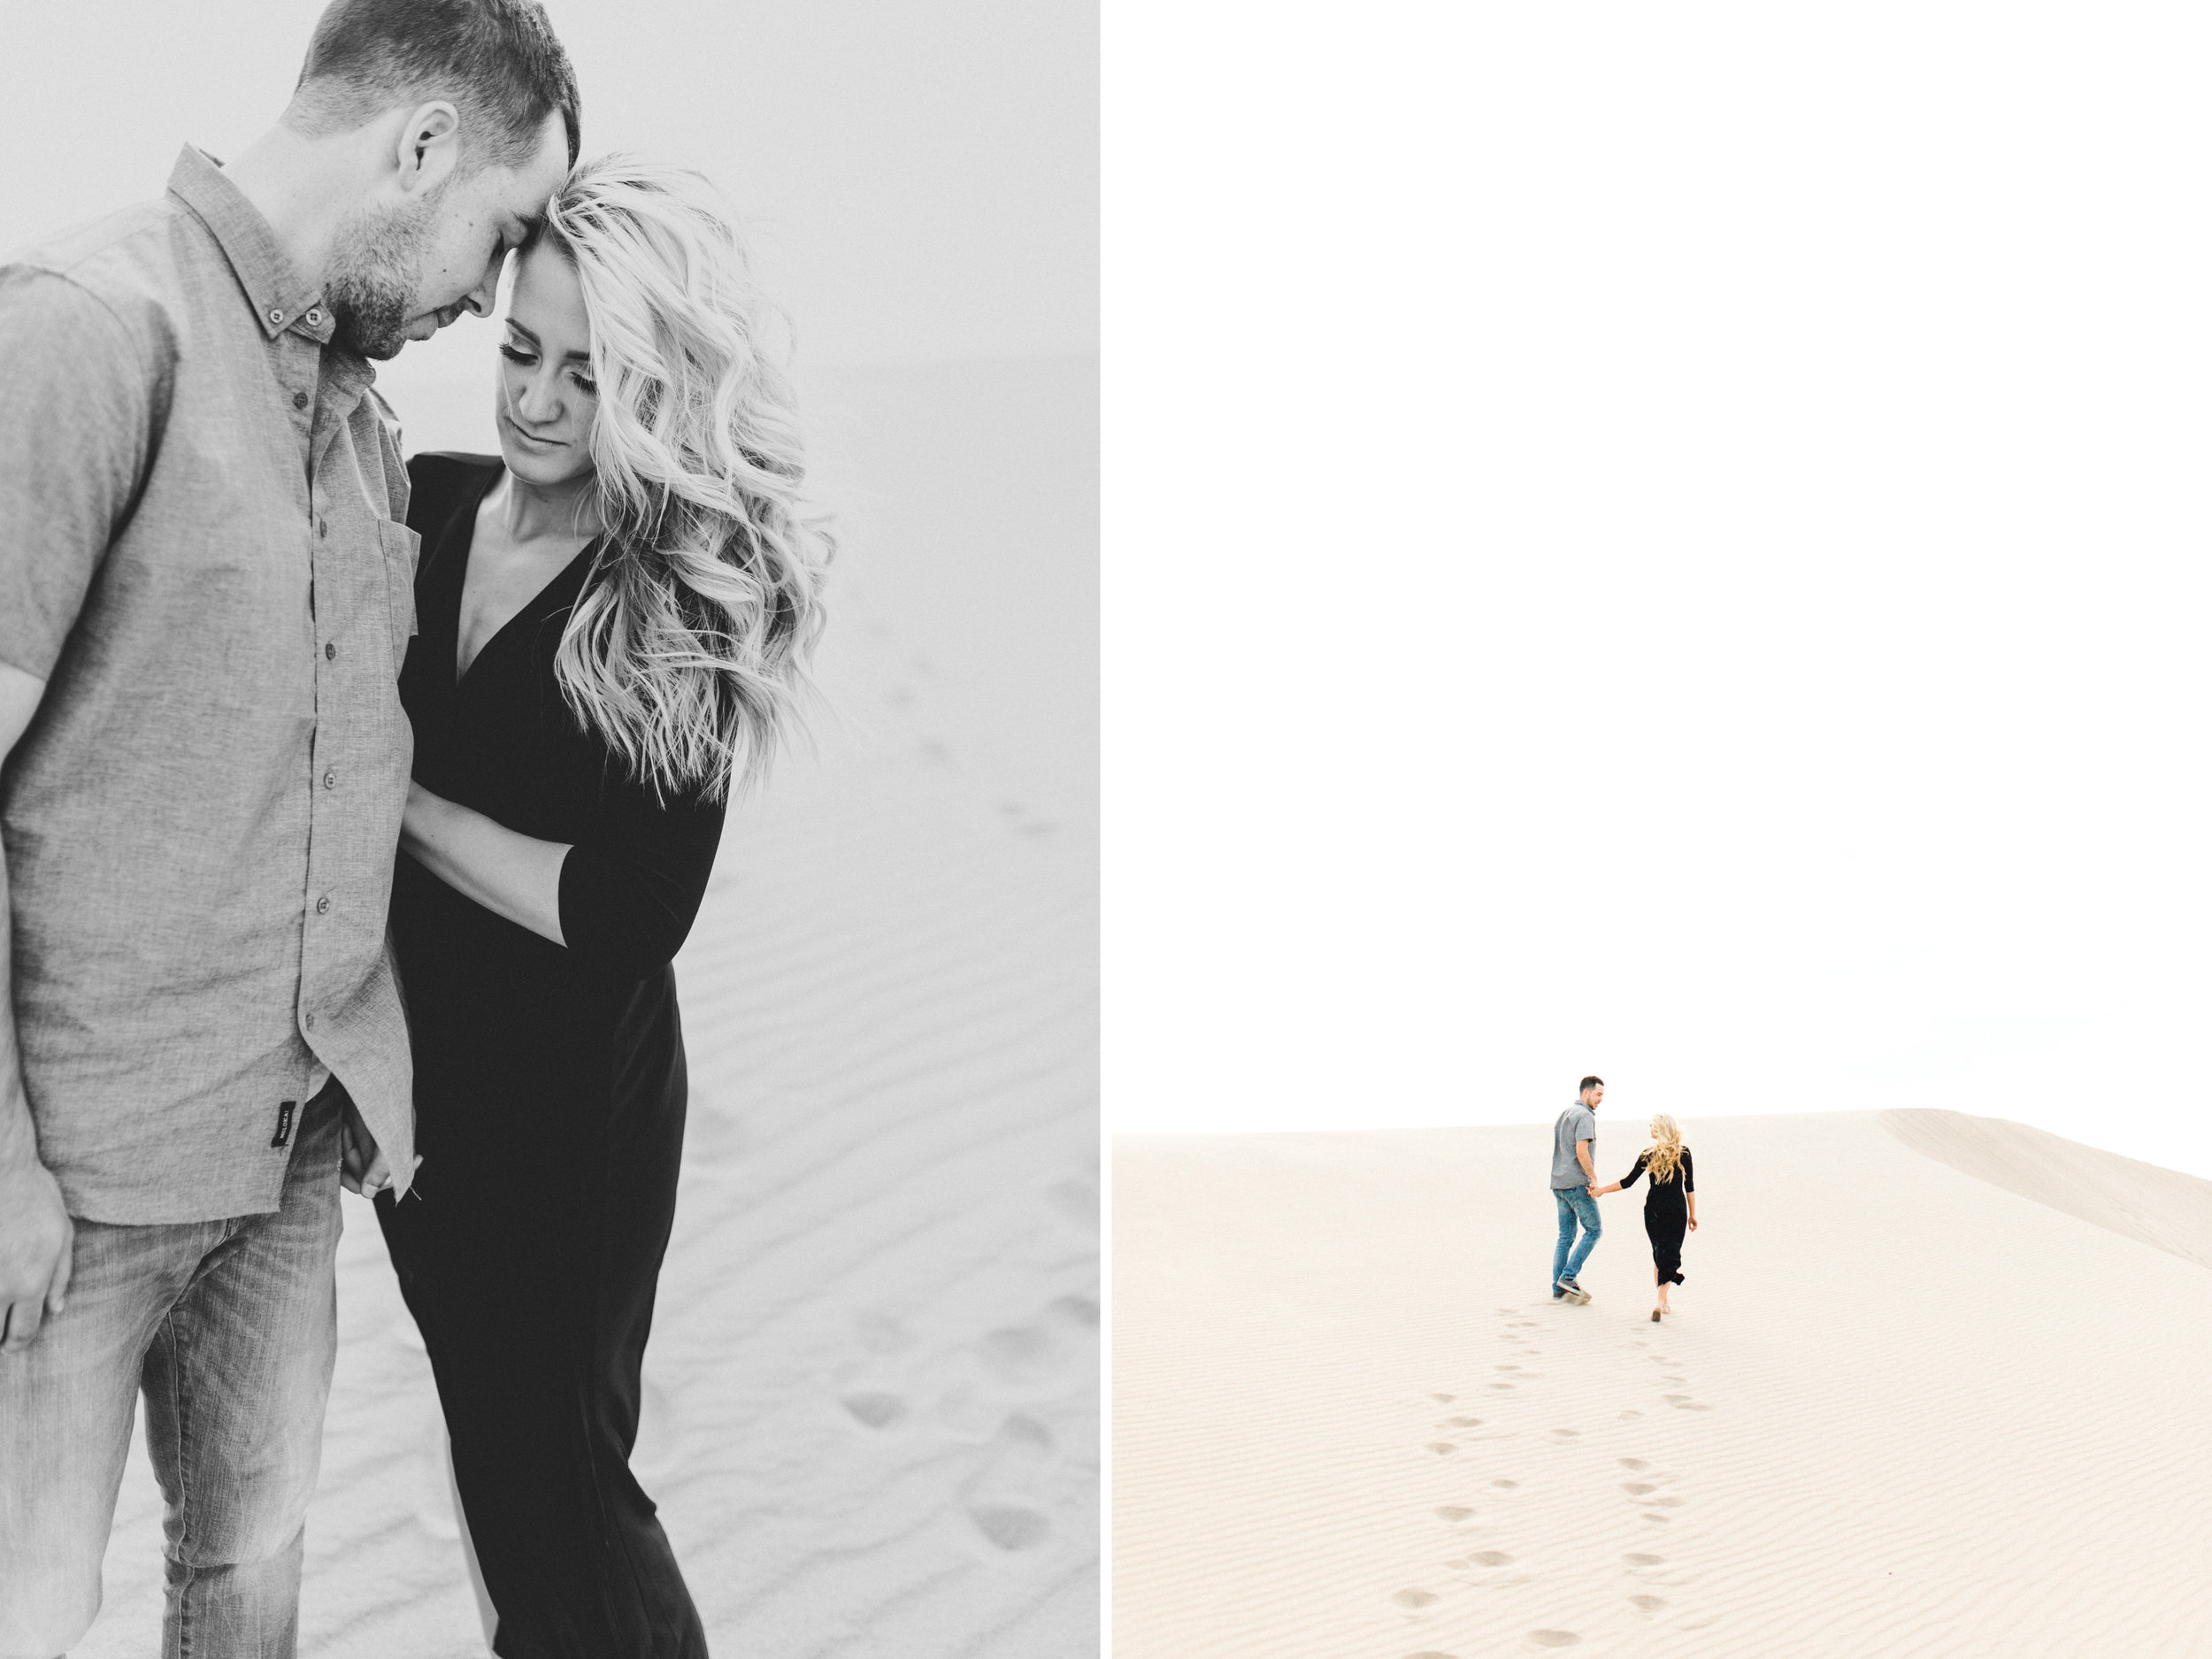 rexburg-idaho-sand-dunes-engagement-photographer-august-trevor1.jpg